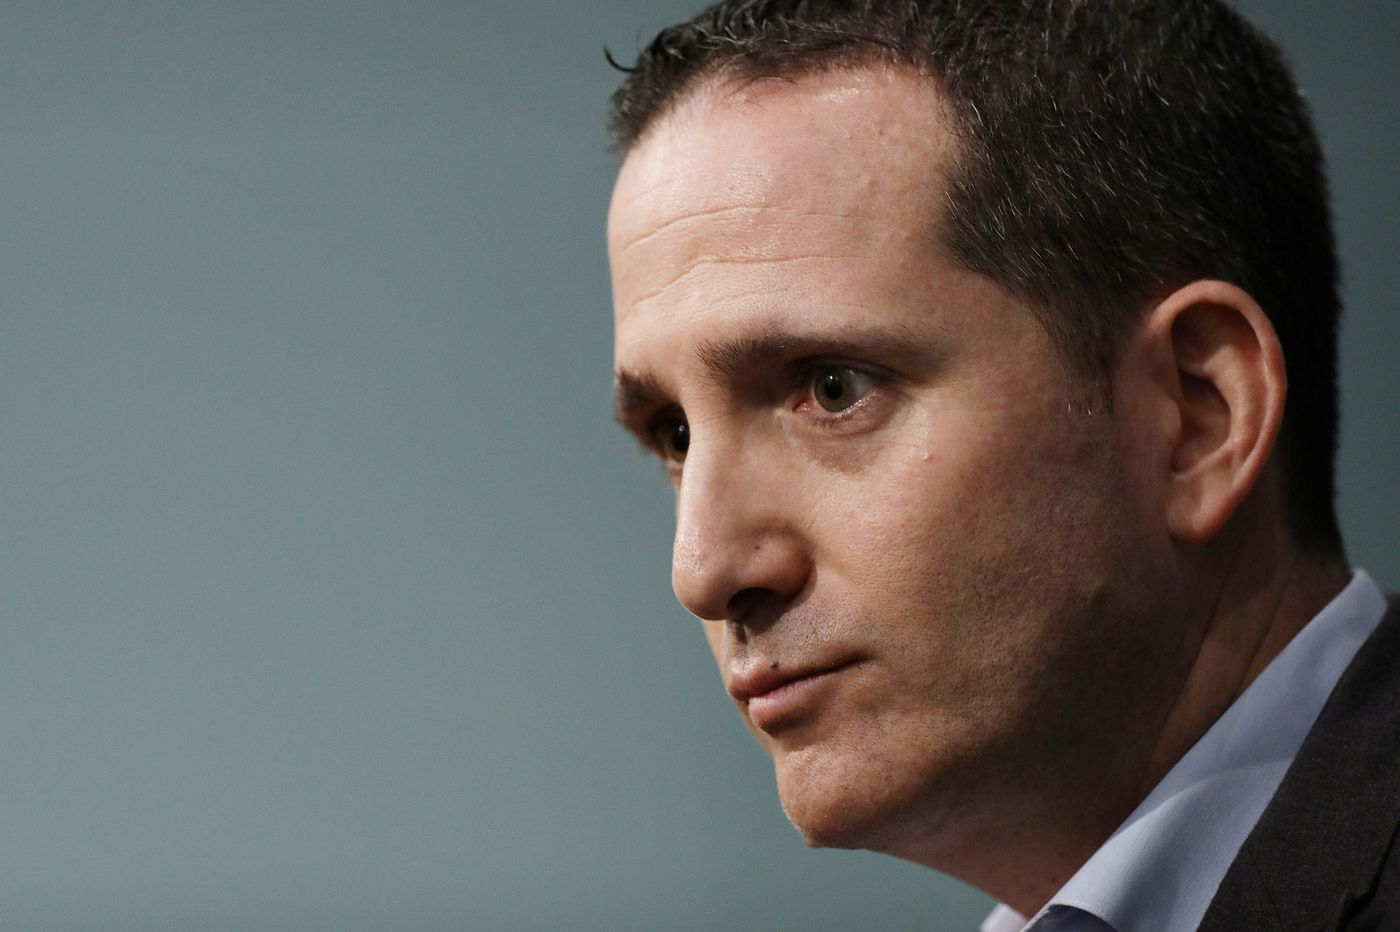 Howie Roseman has spoken! Now let's get to what matters: He's the key to the Eagles' offseason. | Mike Sielski